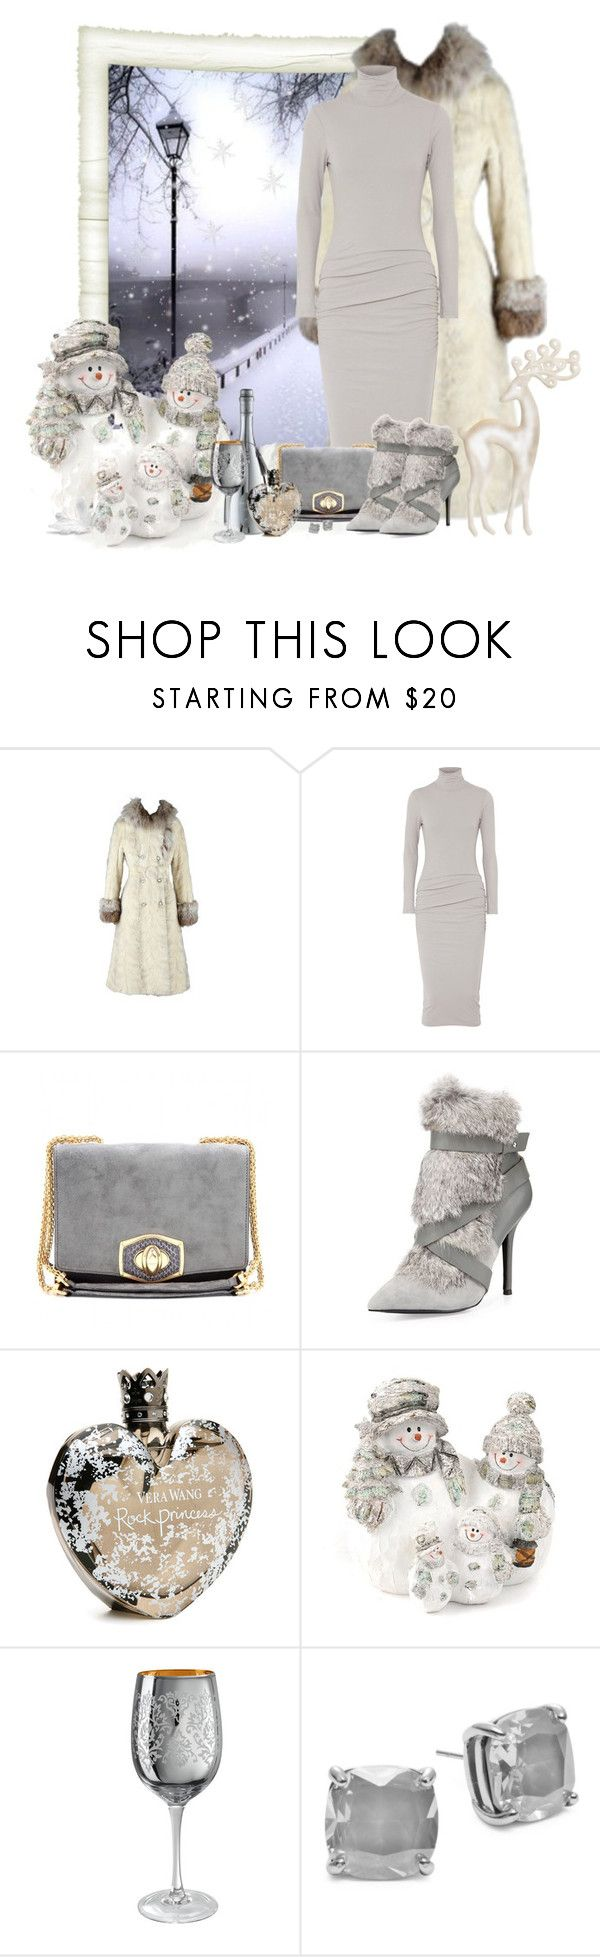 """""""me faz frio, mostre-me a neve"""" by sil-engler ❤ liked on Polyvore featuring James Perse, Nina Ricci, Charles Jourdan, Vera Wang, Artland and Kate Spade"""